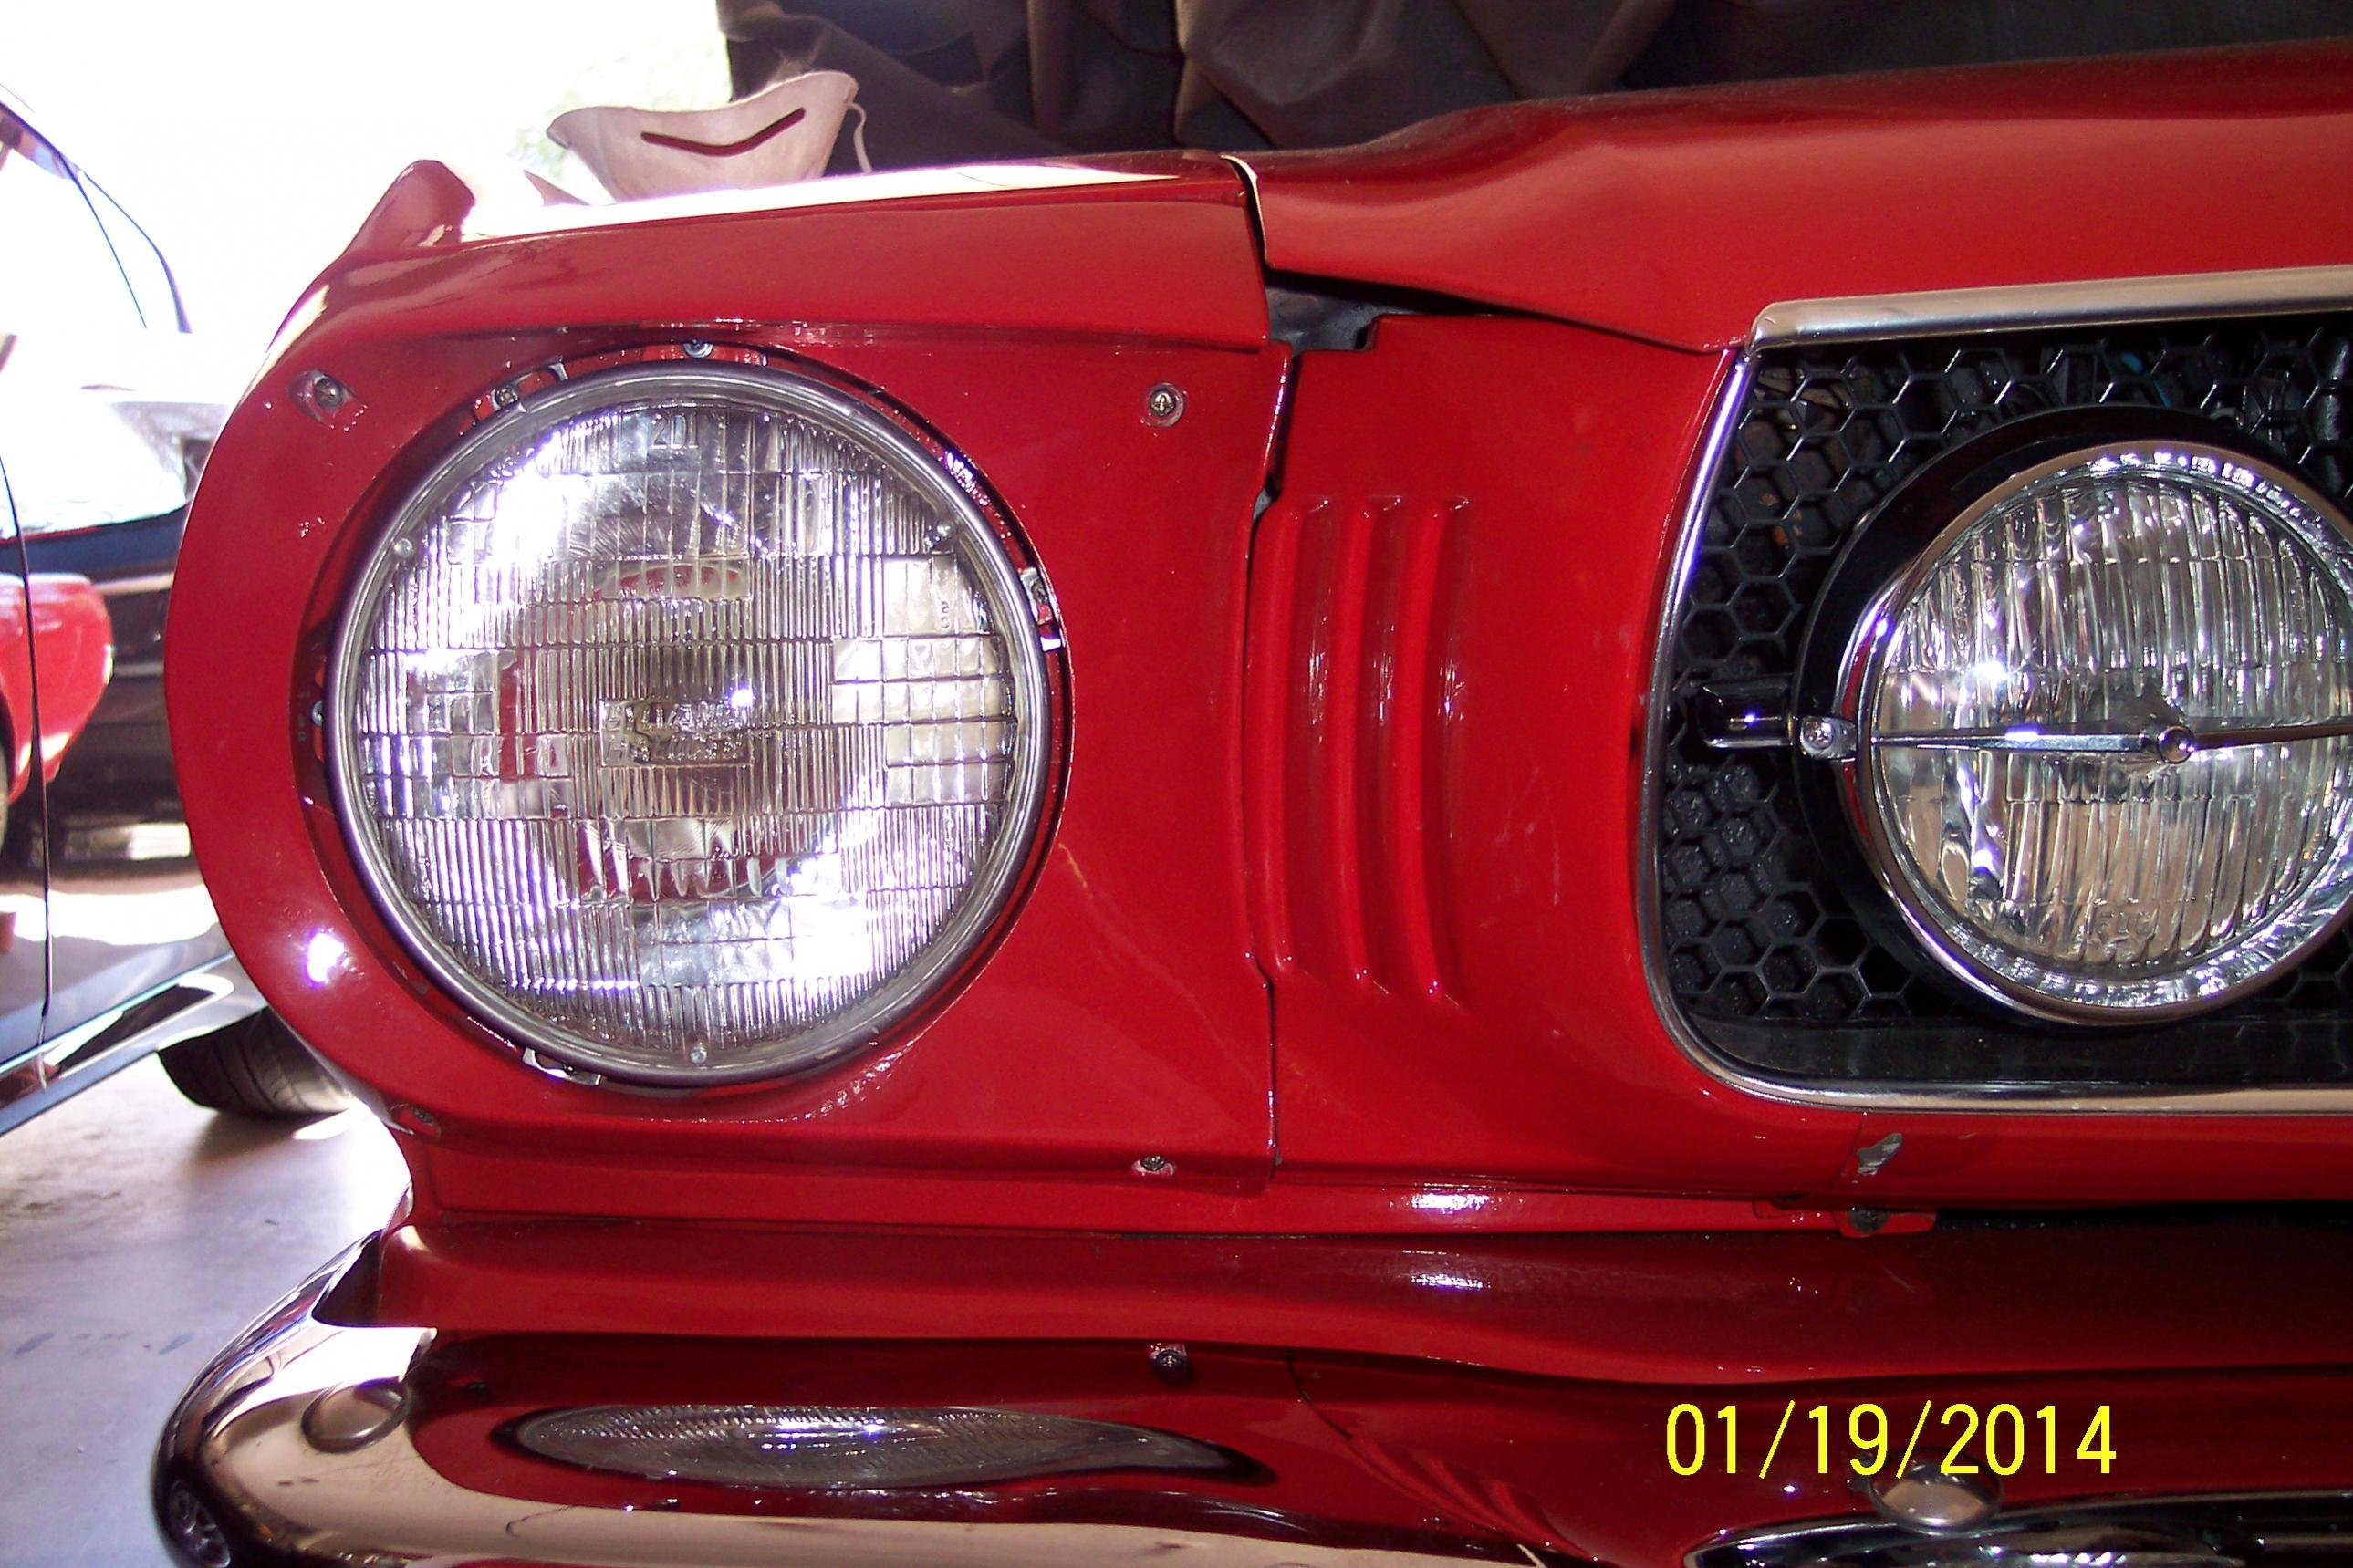 Hood Amp Headlight Door Alignment Question Ford Mustang Forum